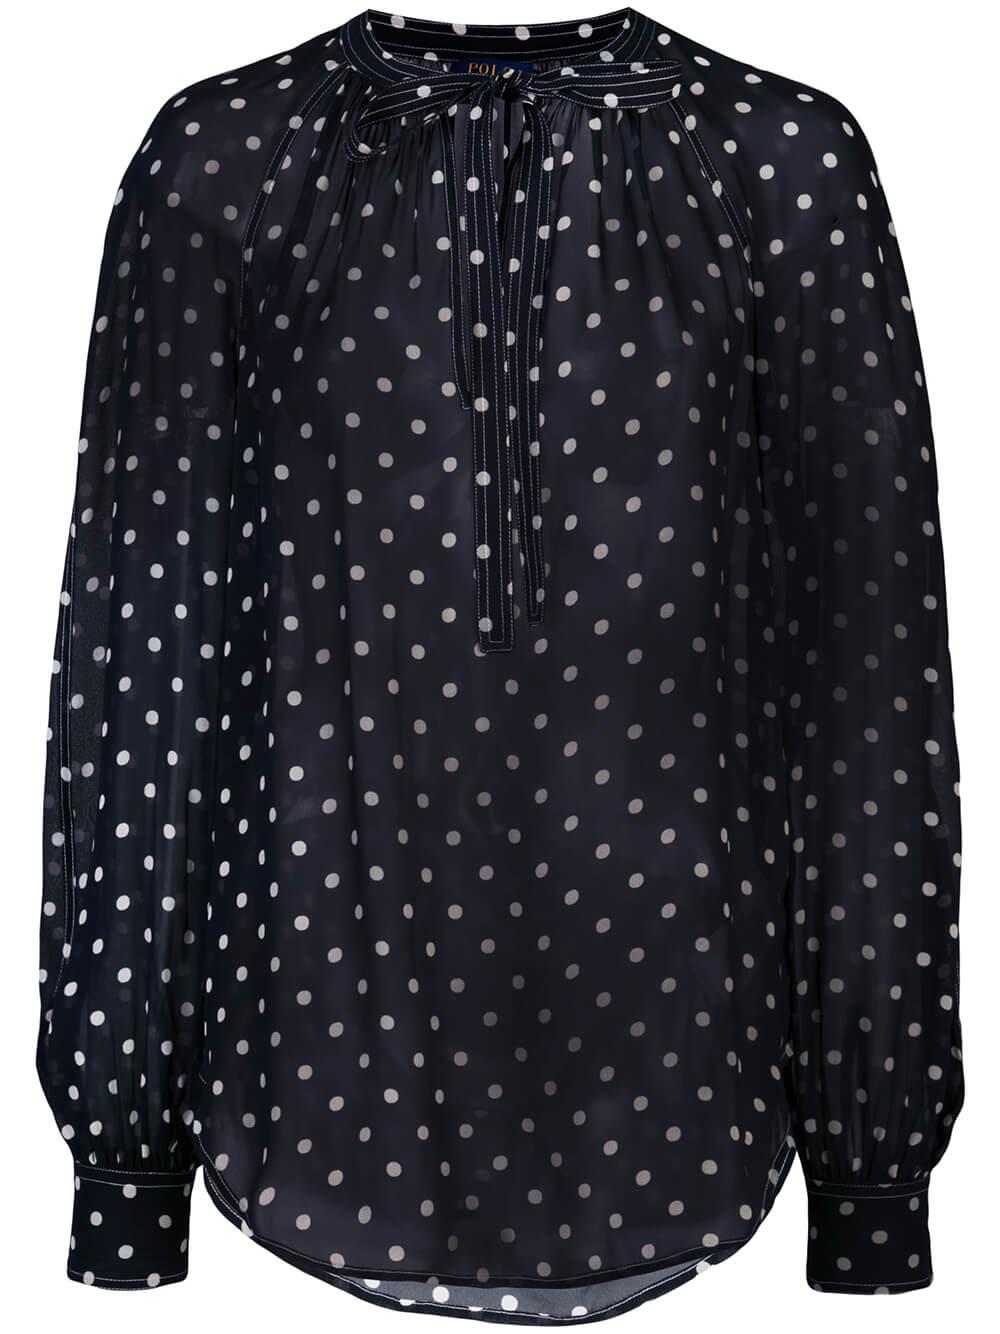 Long Sleeve Polka Dot Blouse Item # 211784168001